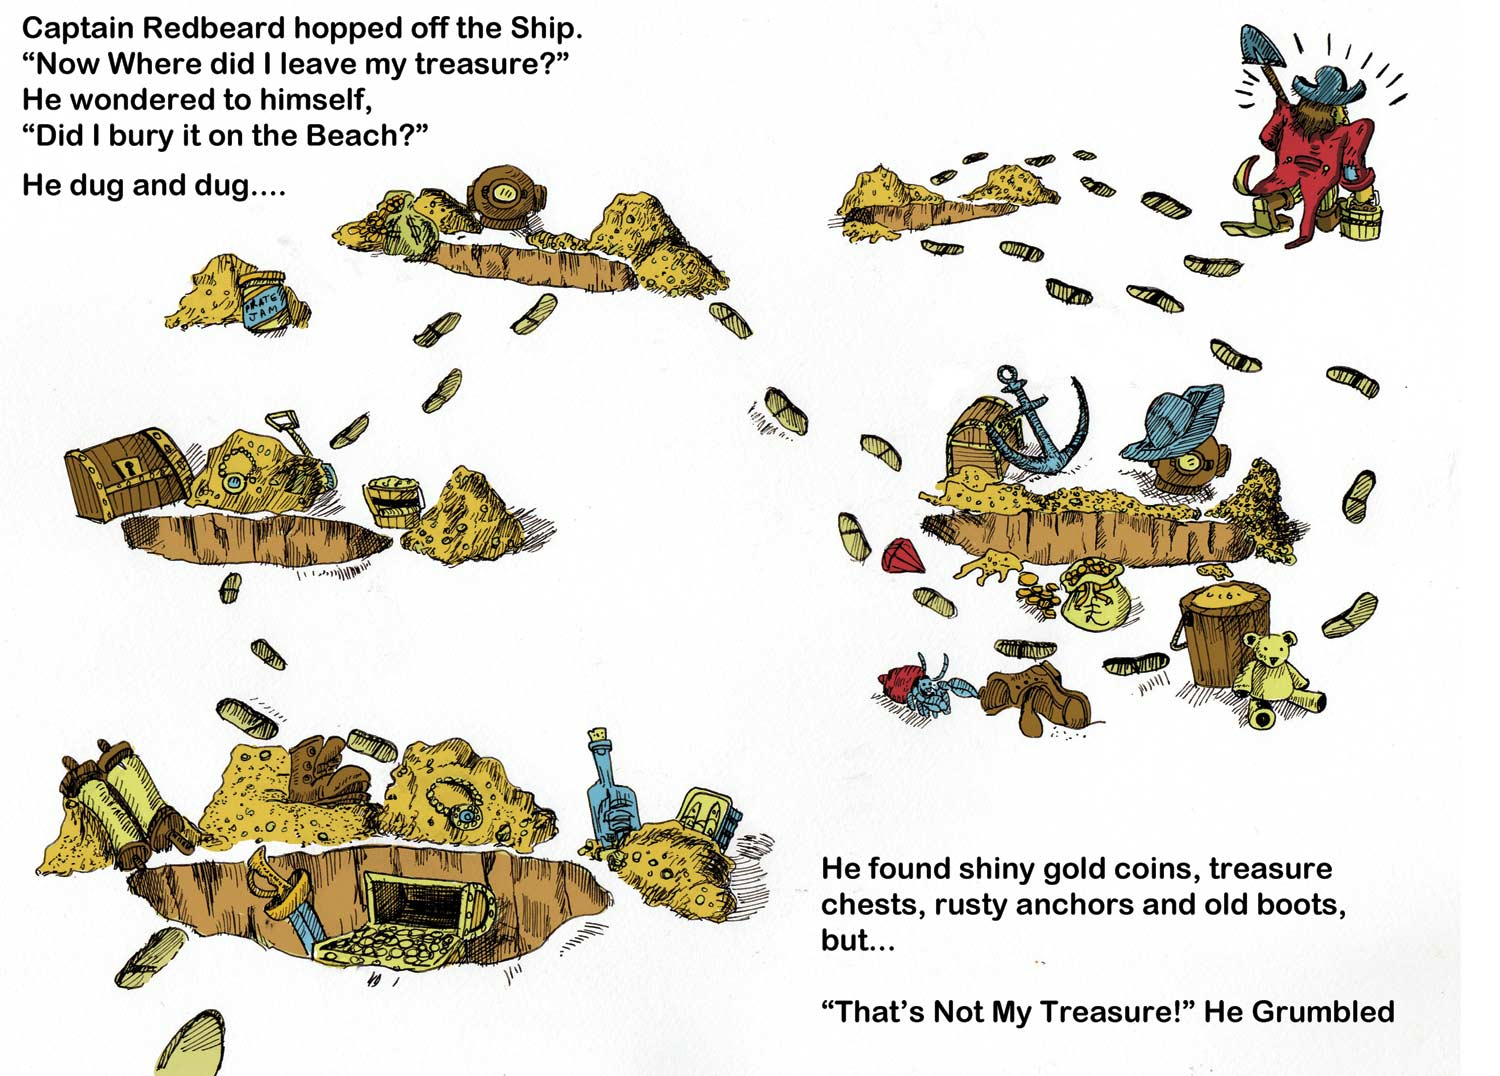 Captain Redbeard's Treasure